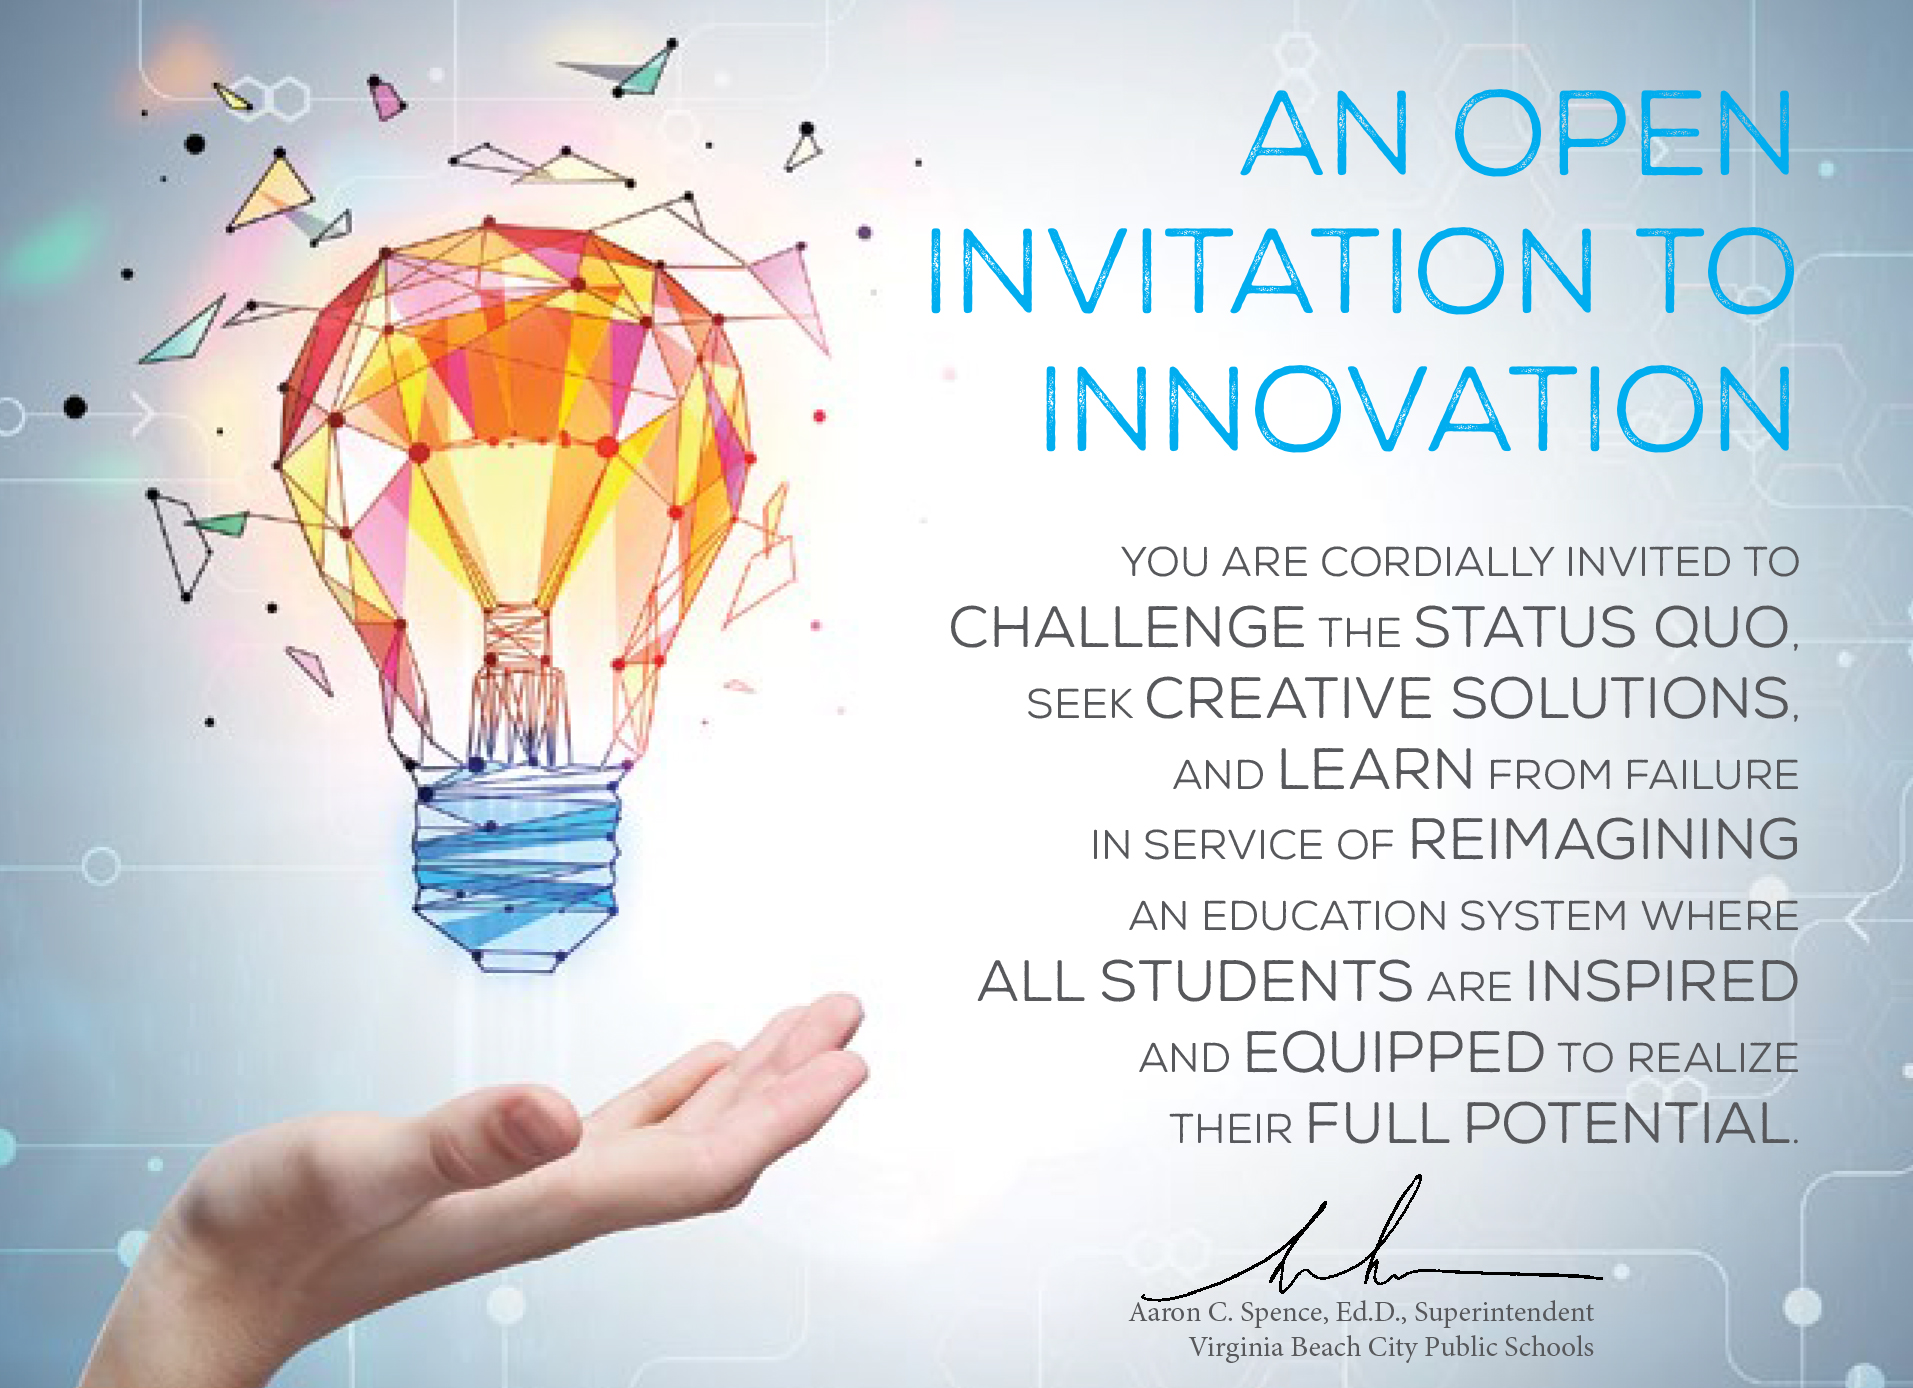 The VBCPS Superintendent, Dr. Aaron Spence, provided this formal invitation to innovation for all network participants as a way to inspire teams to think outside the box in inspiring innovative solutions for all students.